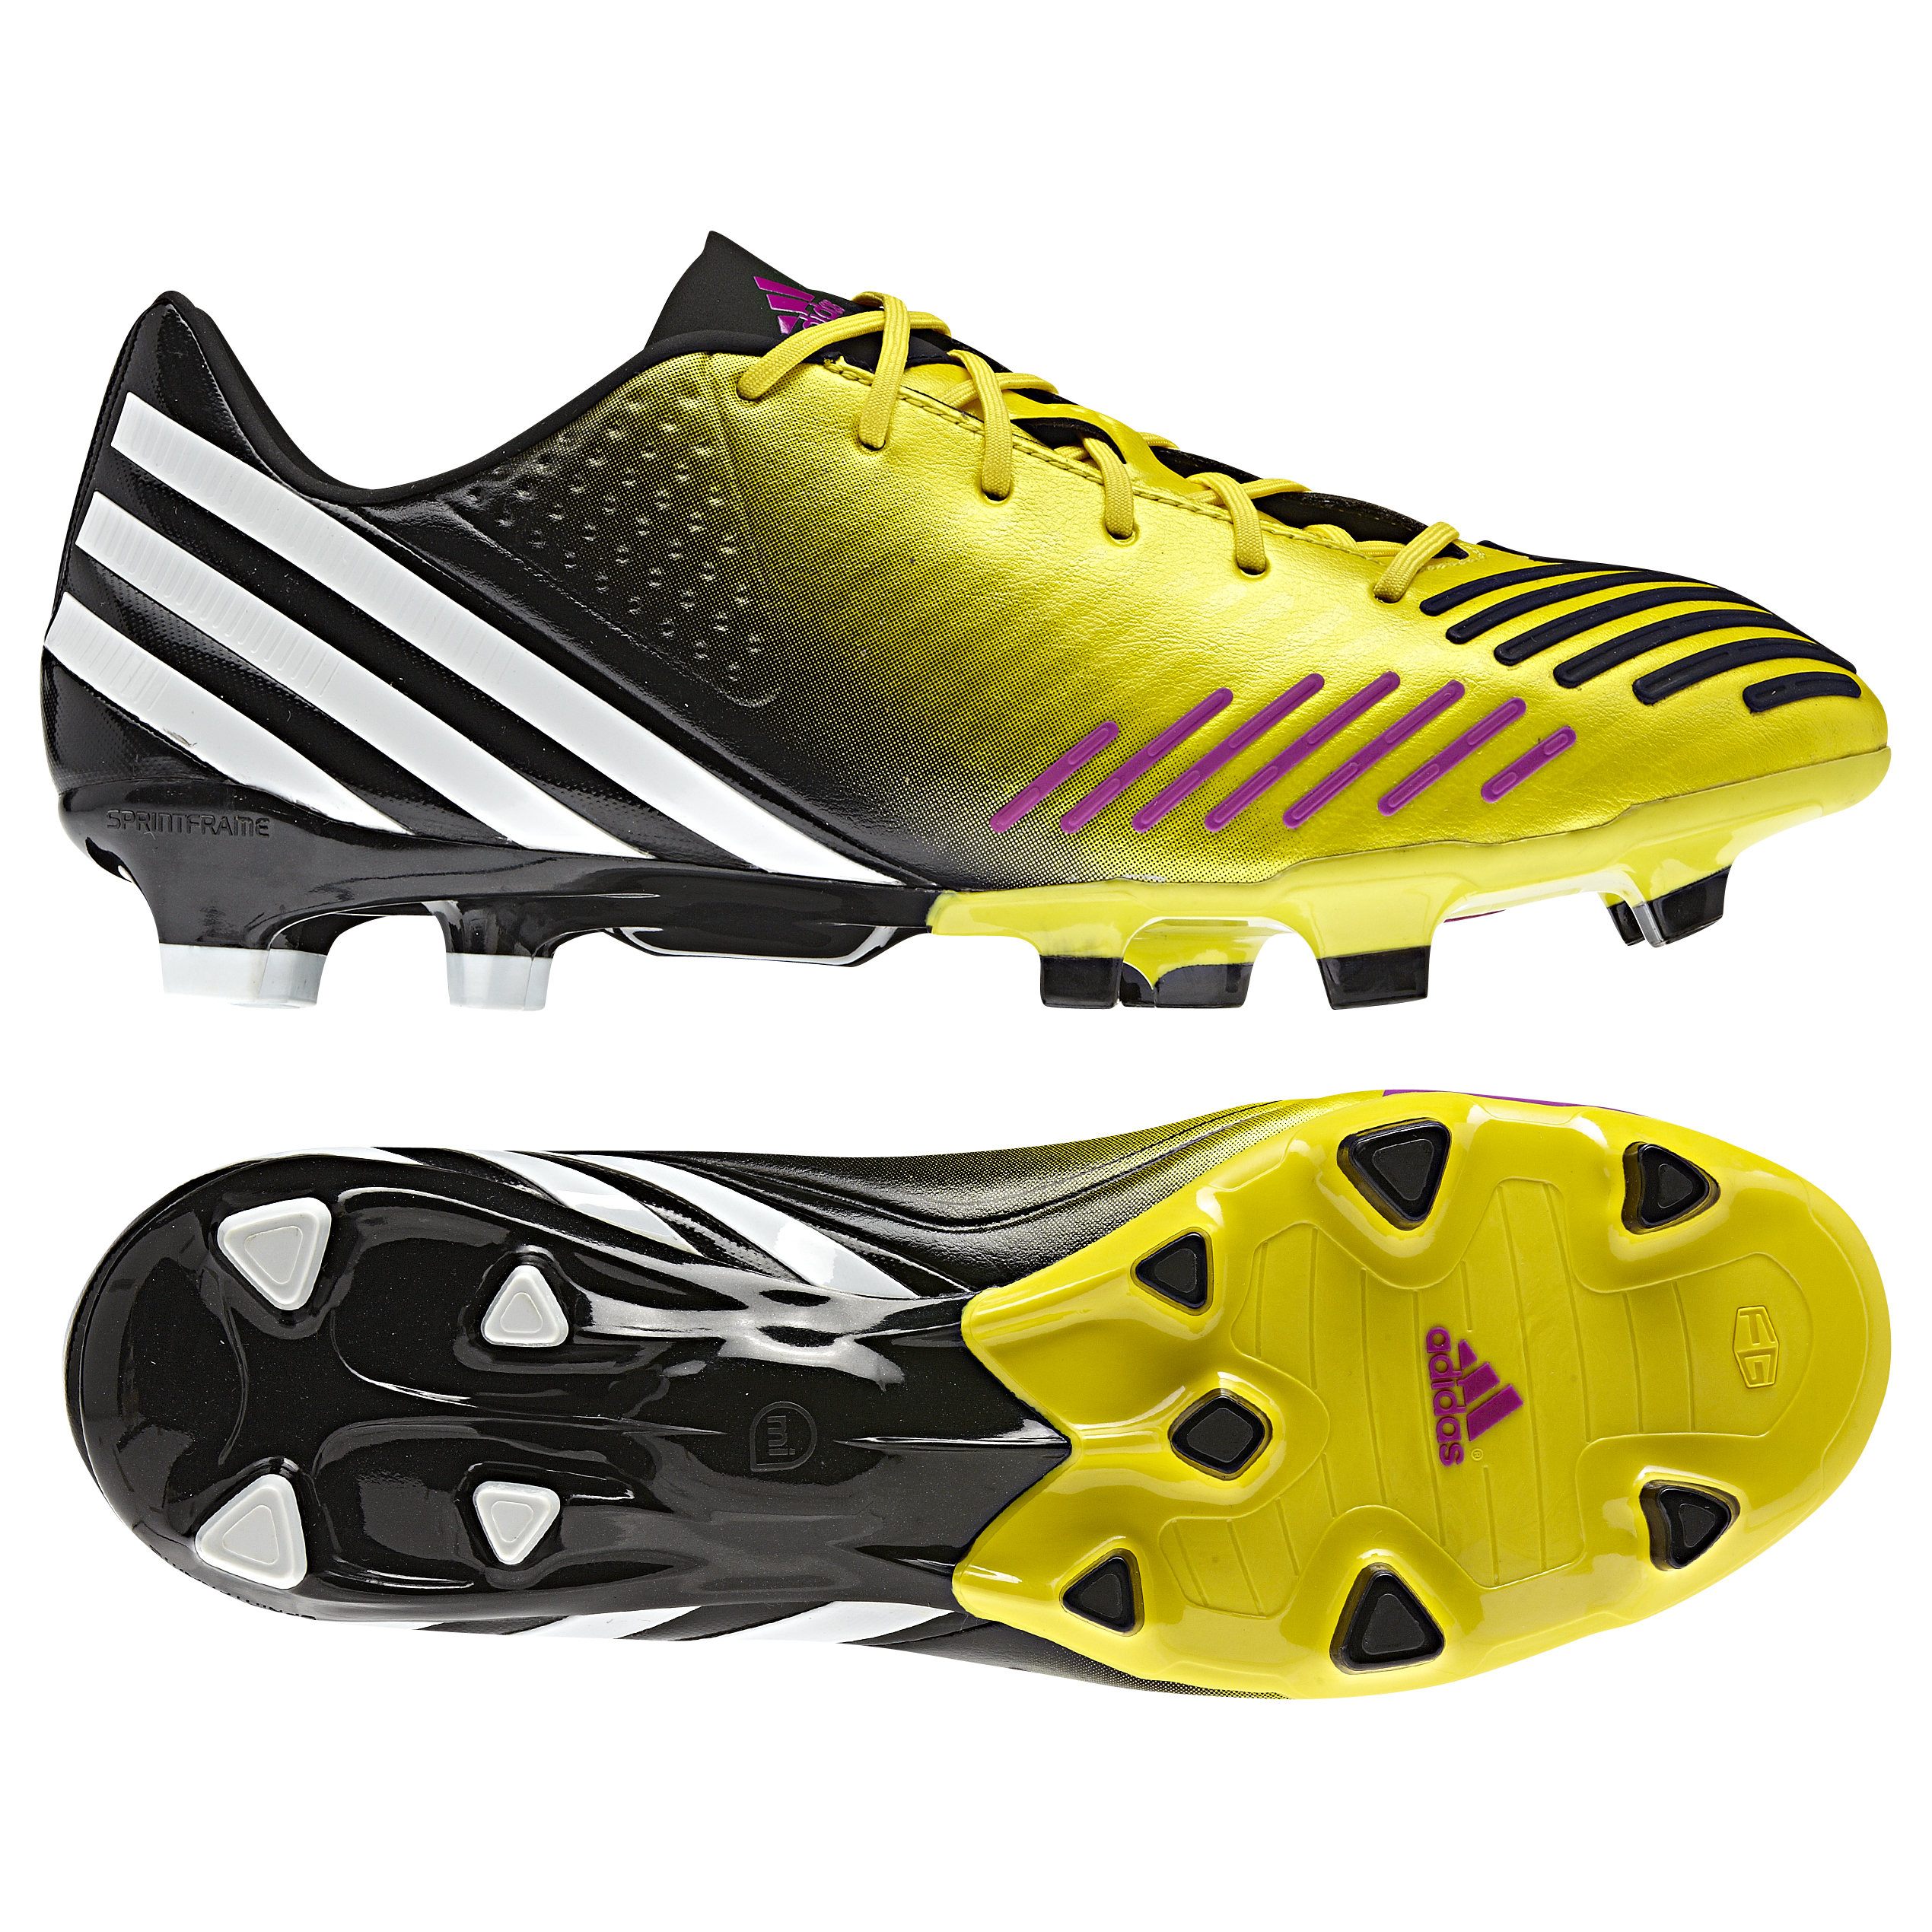 Adidas Predator LZ TRX Firm Ground Football Boots - Vivid Yellow/White/Vivid Pink